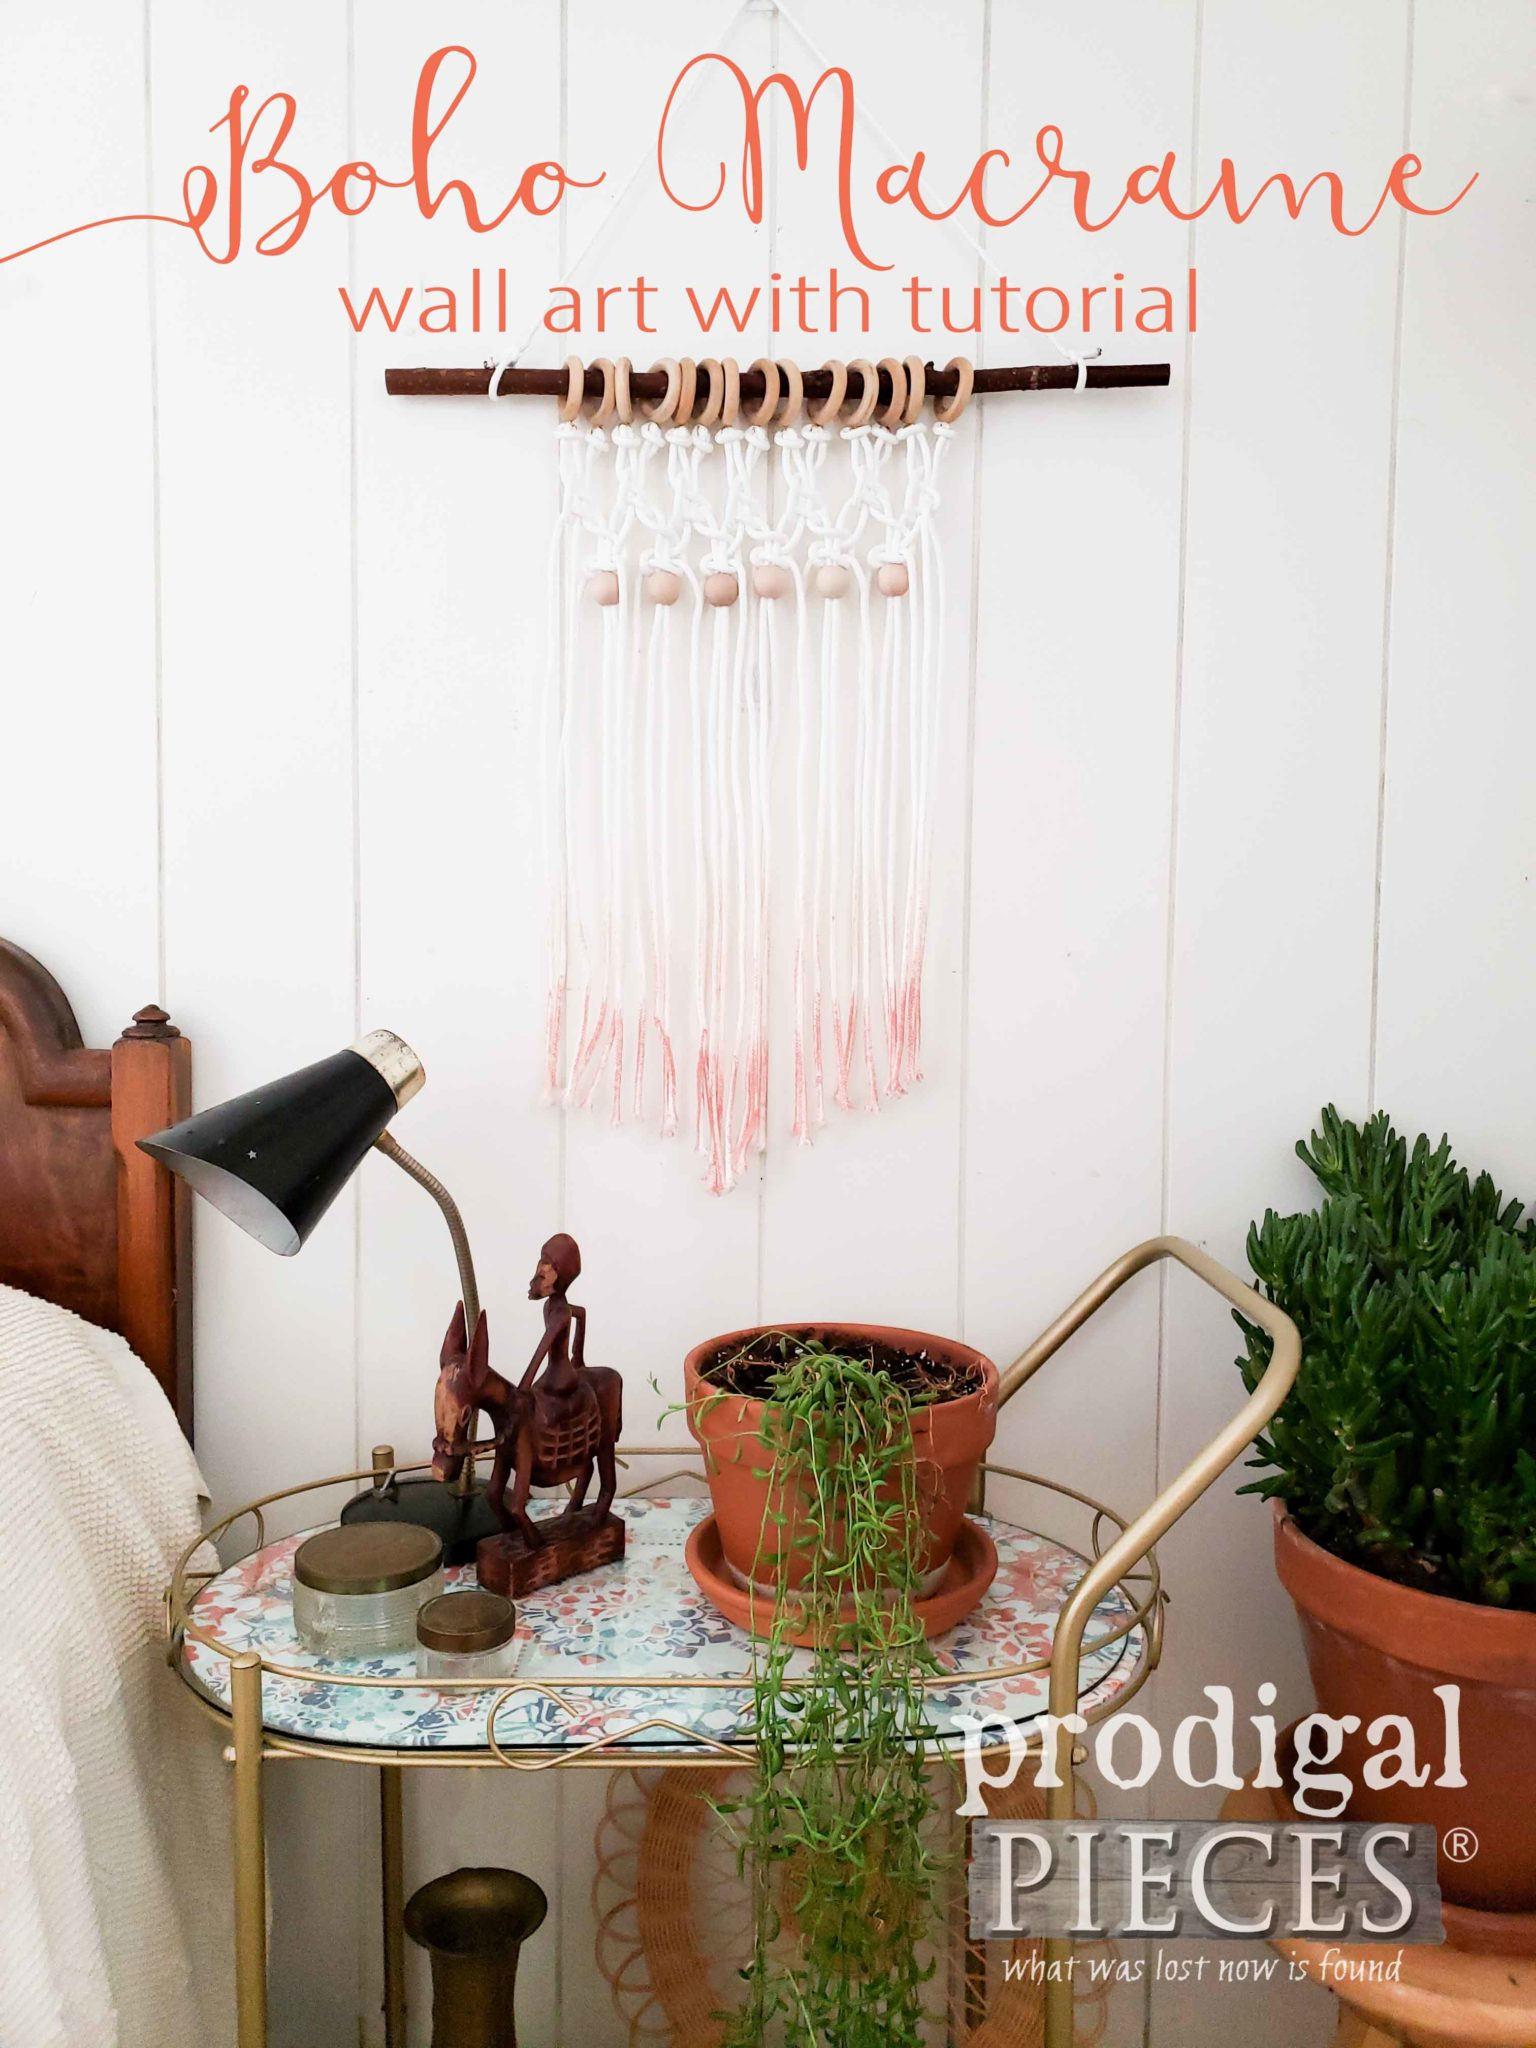 Create this beautiful ombre macrame wall art with this step-by-step tutorial by Larissa of Prodigal Pieces | prodigalpieces.com #prodigalpieces #home #homedecor #homedecorideas #handmade #midcenturymodern #boho